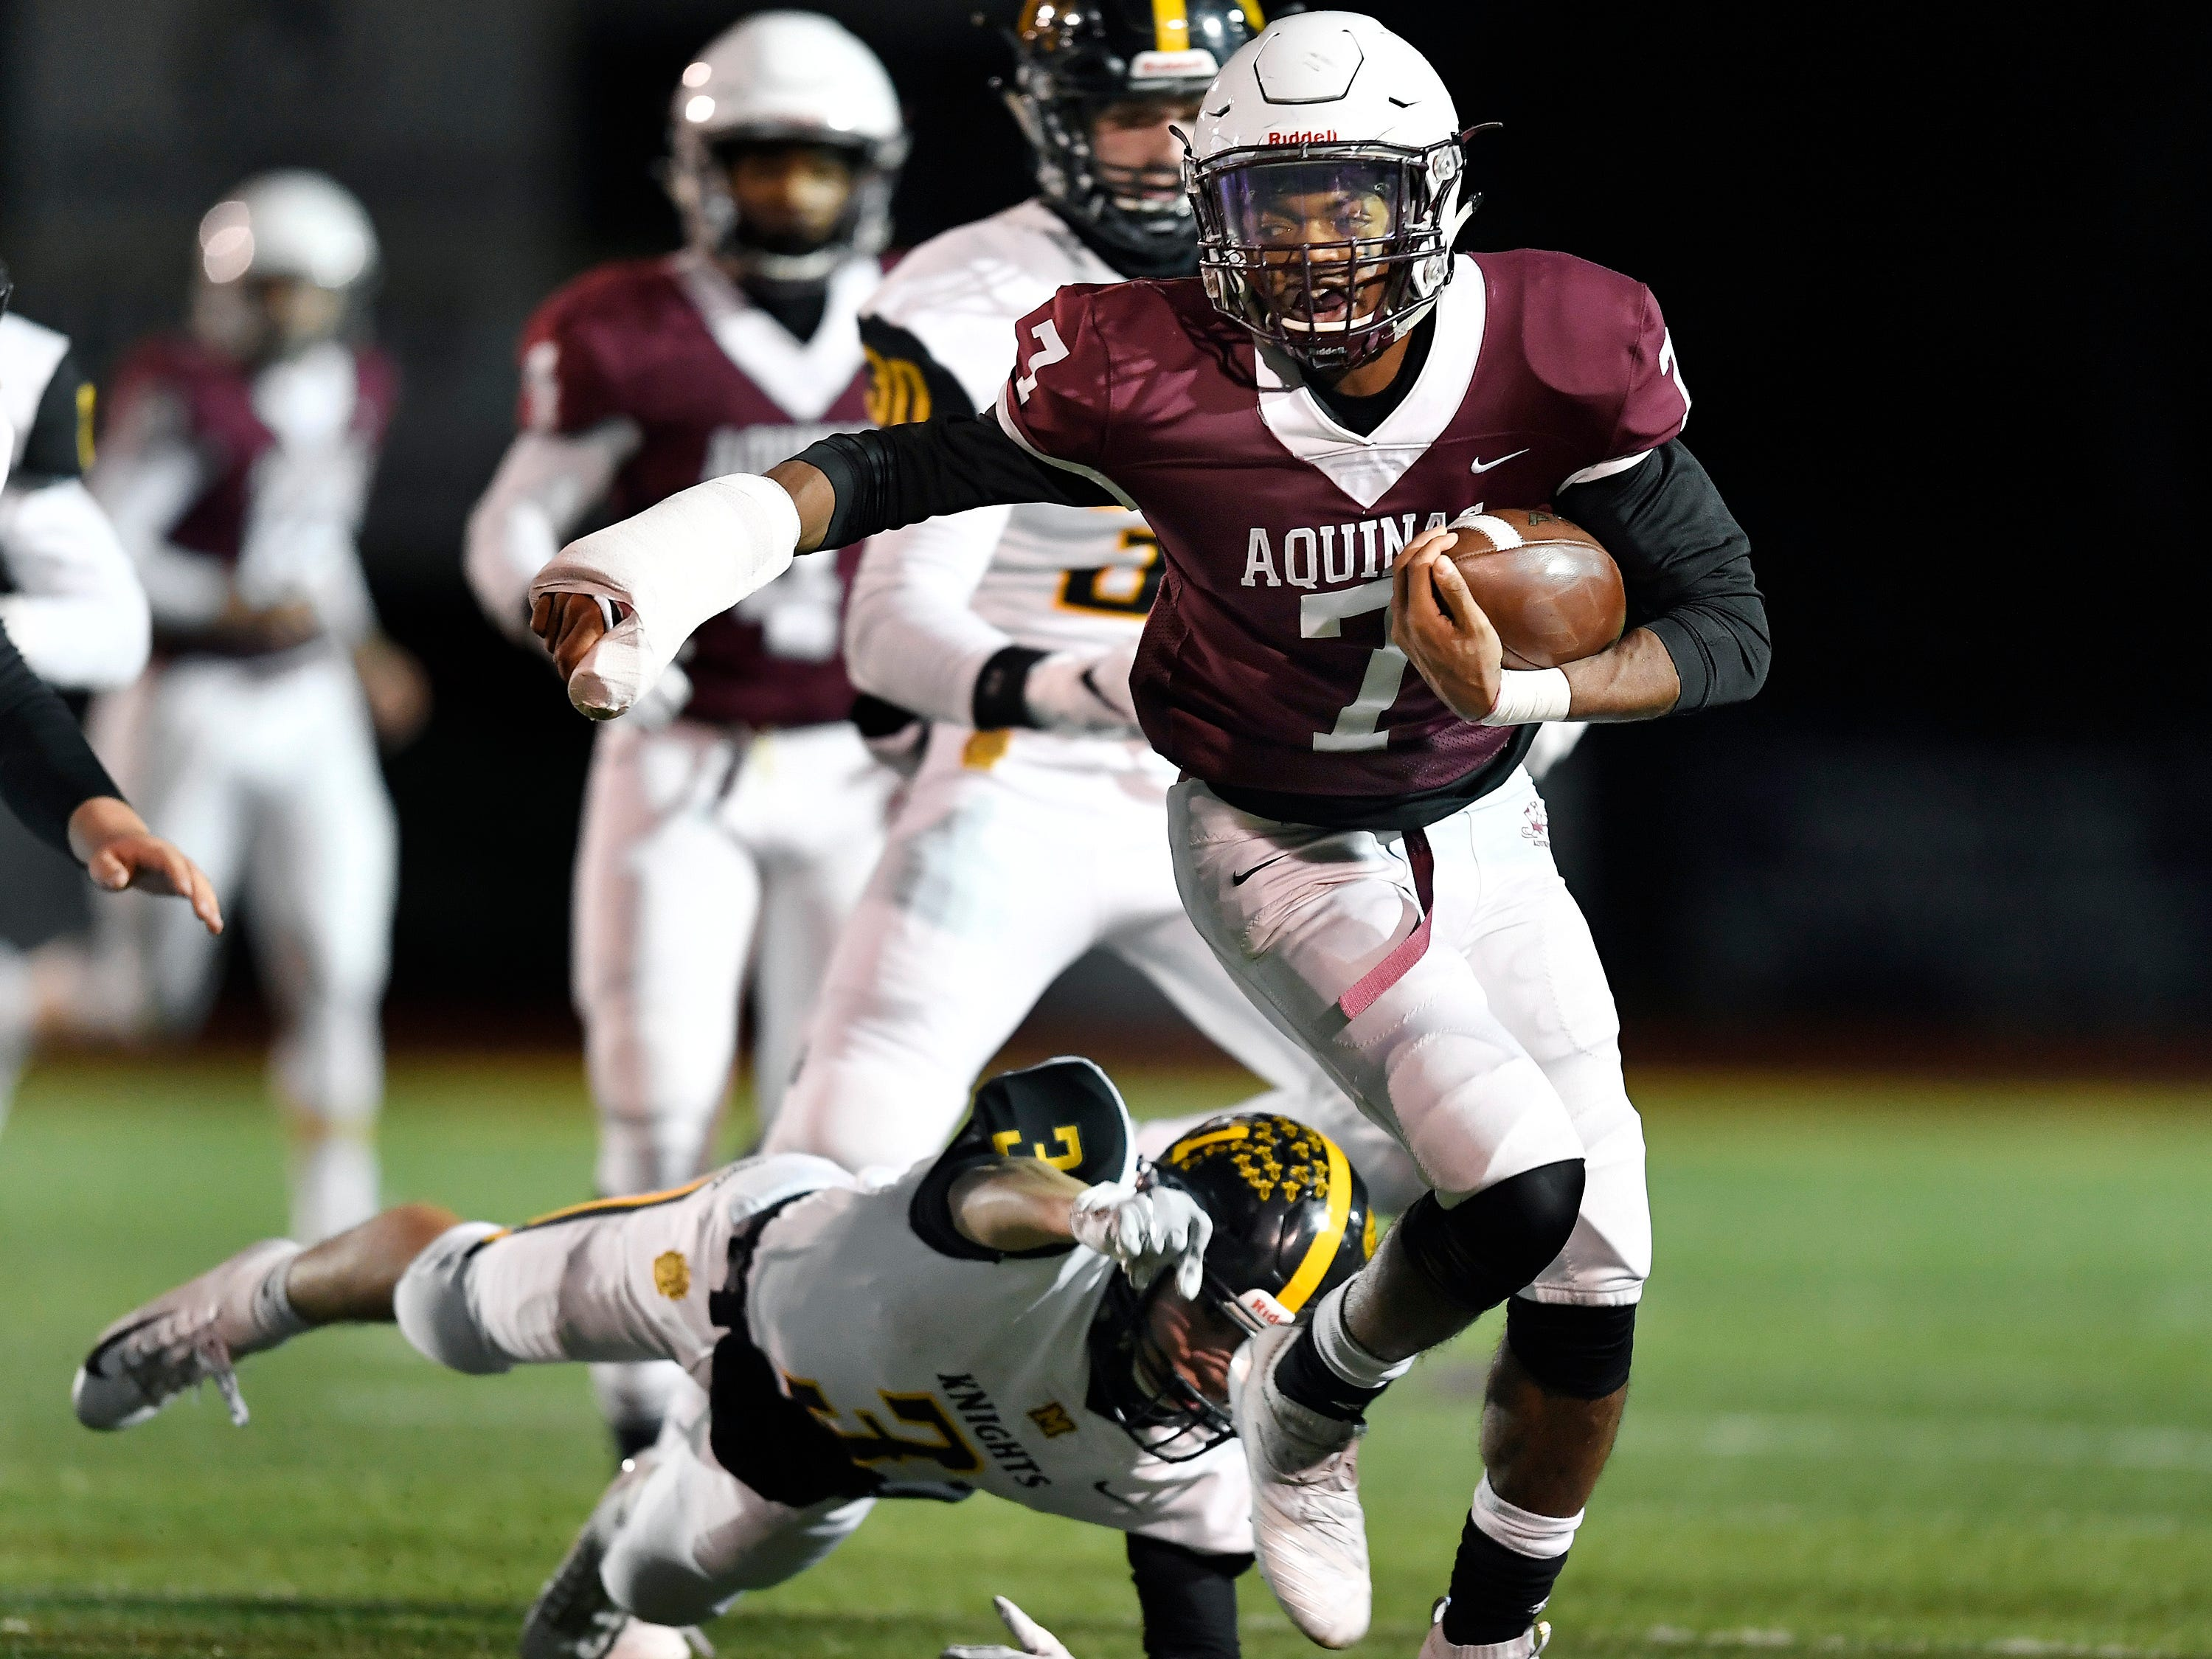 Aquinas' Caron Robinson, right, breaks a tackle by McQuaid's Andrew Passero on his way to a 56-yard touchdown during the Section V Class AA championship game at SUNY Brockport, Saturday, Nov. 3, 2018.